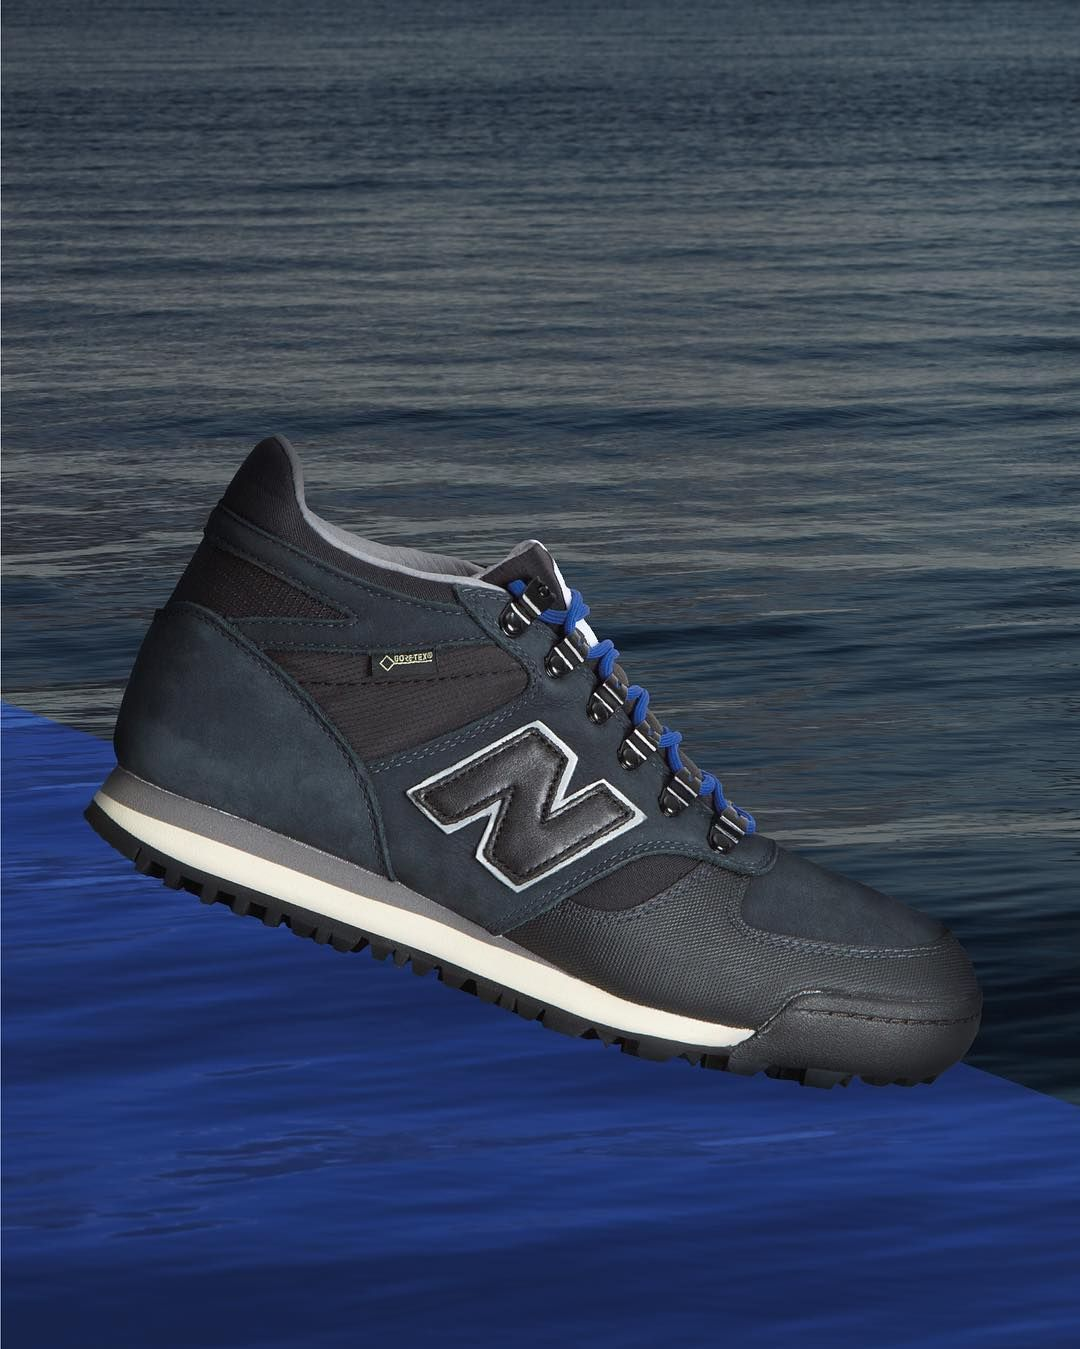 The Danish Weather Pack 2.0 in collaboration with New Balance celebrates the re-issue of the original Rainier.  The colour scheme for the Danish Weather Pack 2.0 is inspired by the shoreline typography of coastal Denmark during the dark months of winter time. We have taken the New Balance silhouette and reintroduced the Rainiers original Vibram sole unit updating the D-rings to modern lace hoops and upgrading to a Gore-Tex upper offering the required protection against the elements. The shoe…